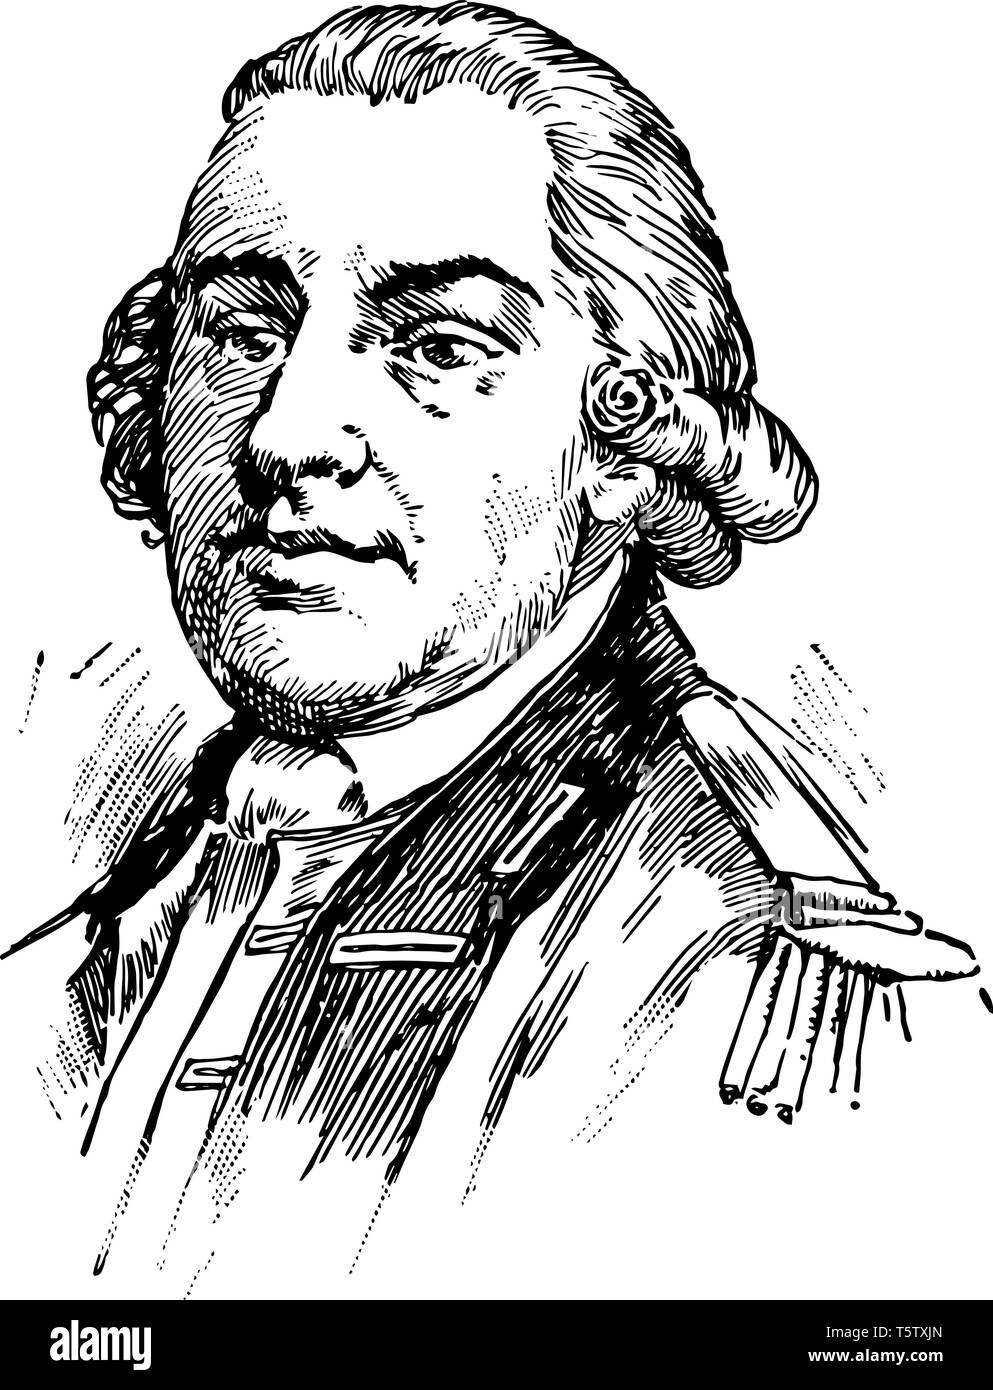 Thomas Gage 1719 to 1787 he was a British army officer and military commander famous for his many years of service in North America vintage line drawi - Stock Image